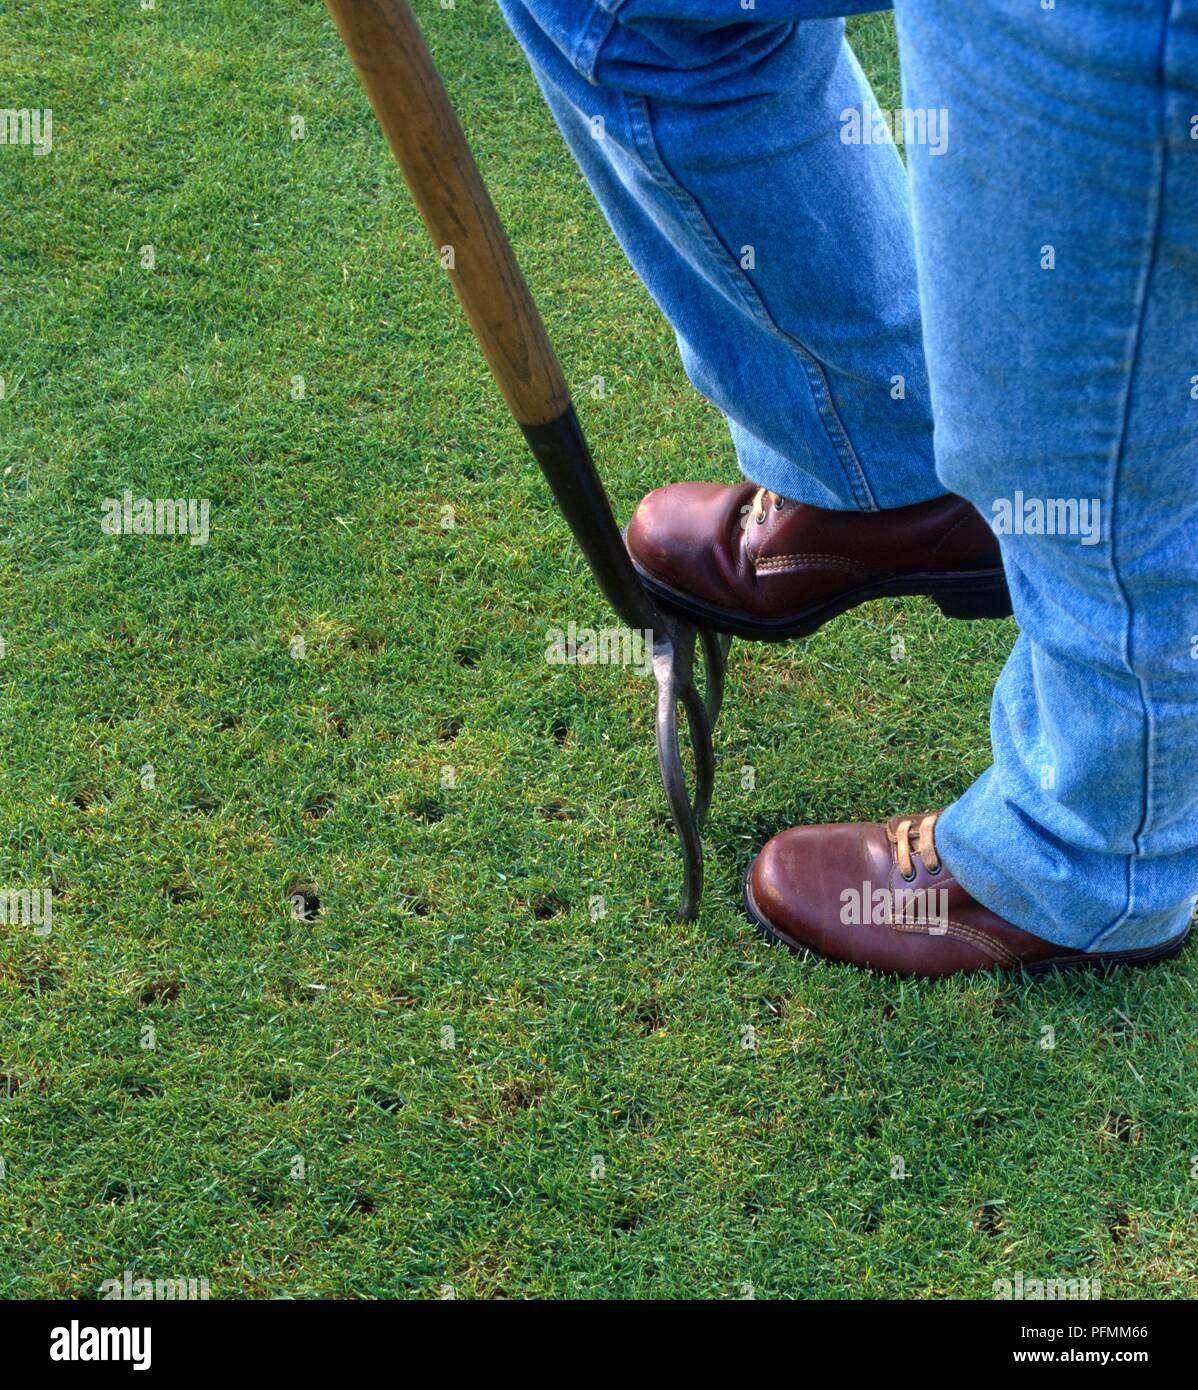 Can I Aerate Lawn With Garden Fork Fasci Garden